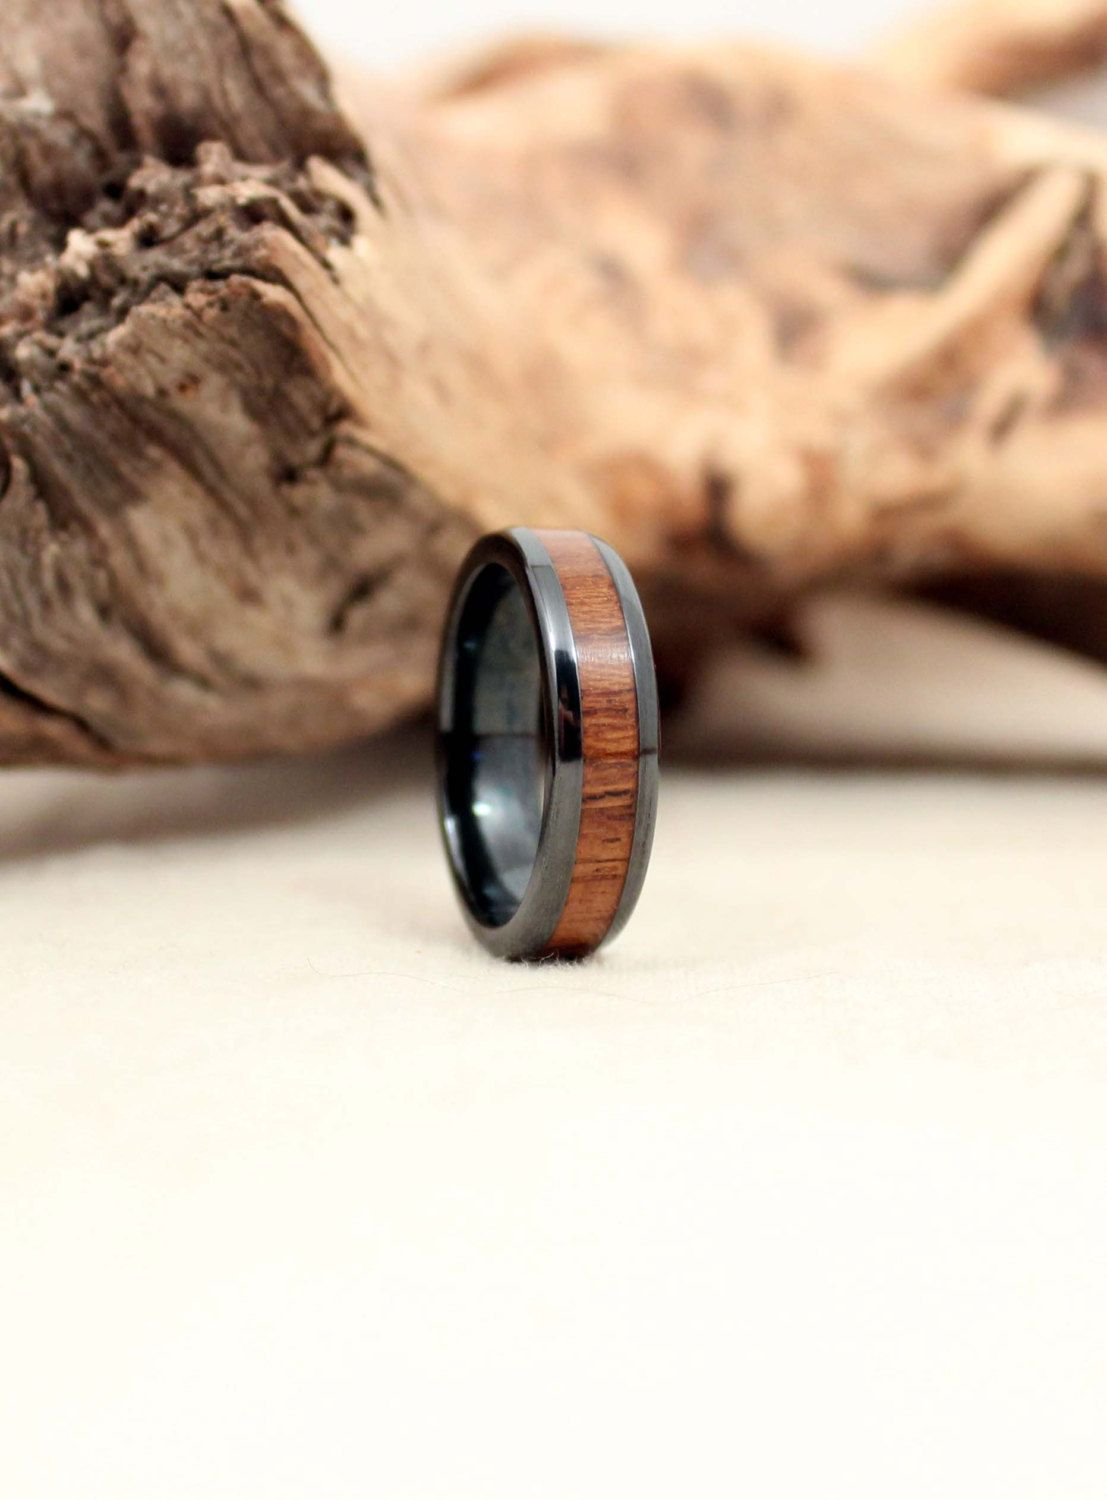 band wedding duality wood products mens teak rings titanium men s metal and ring